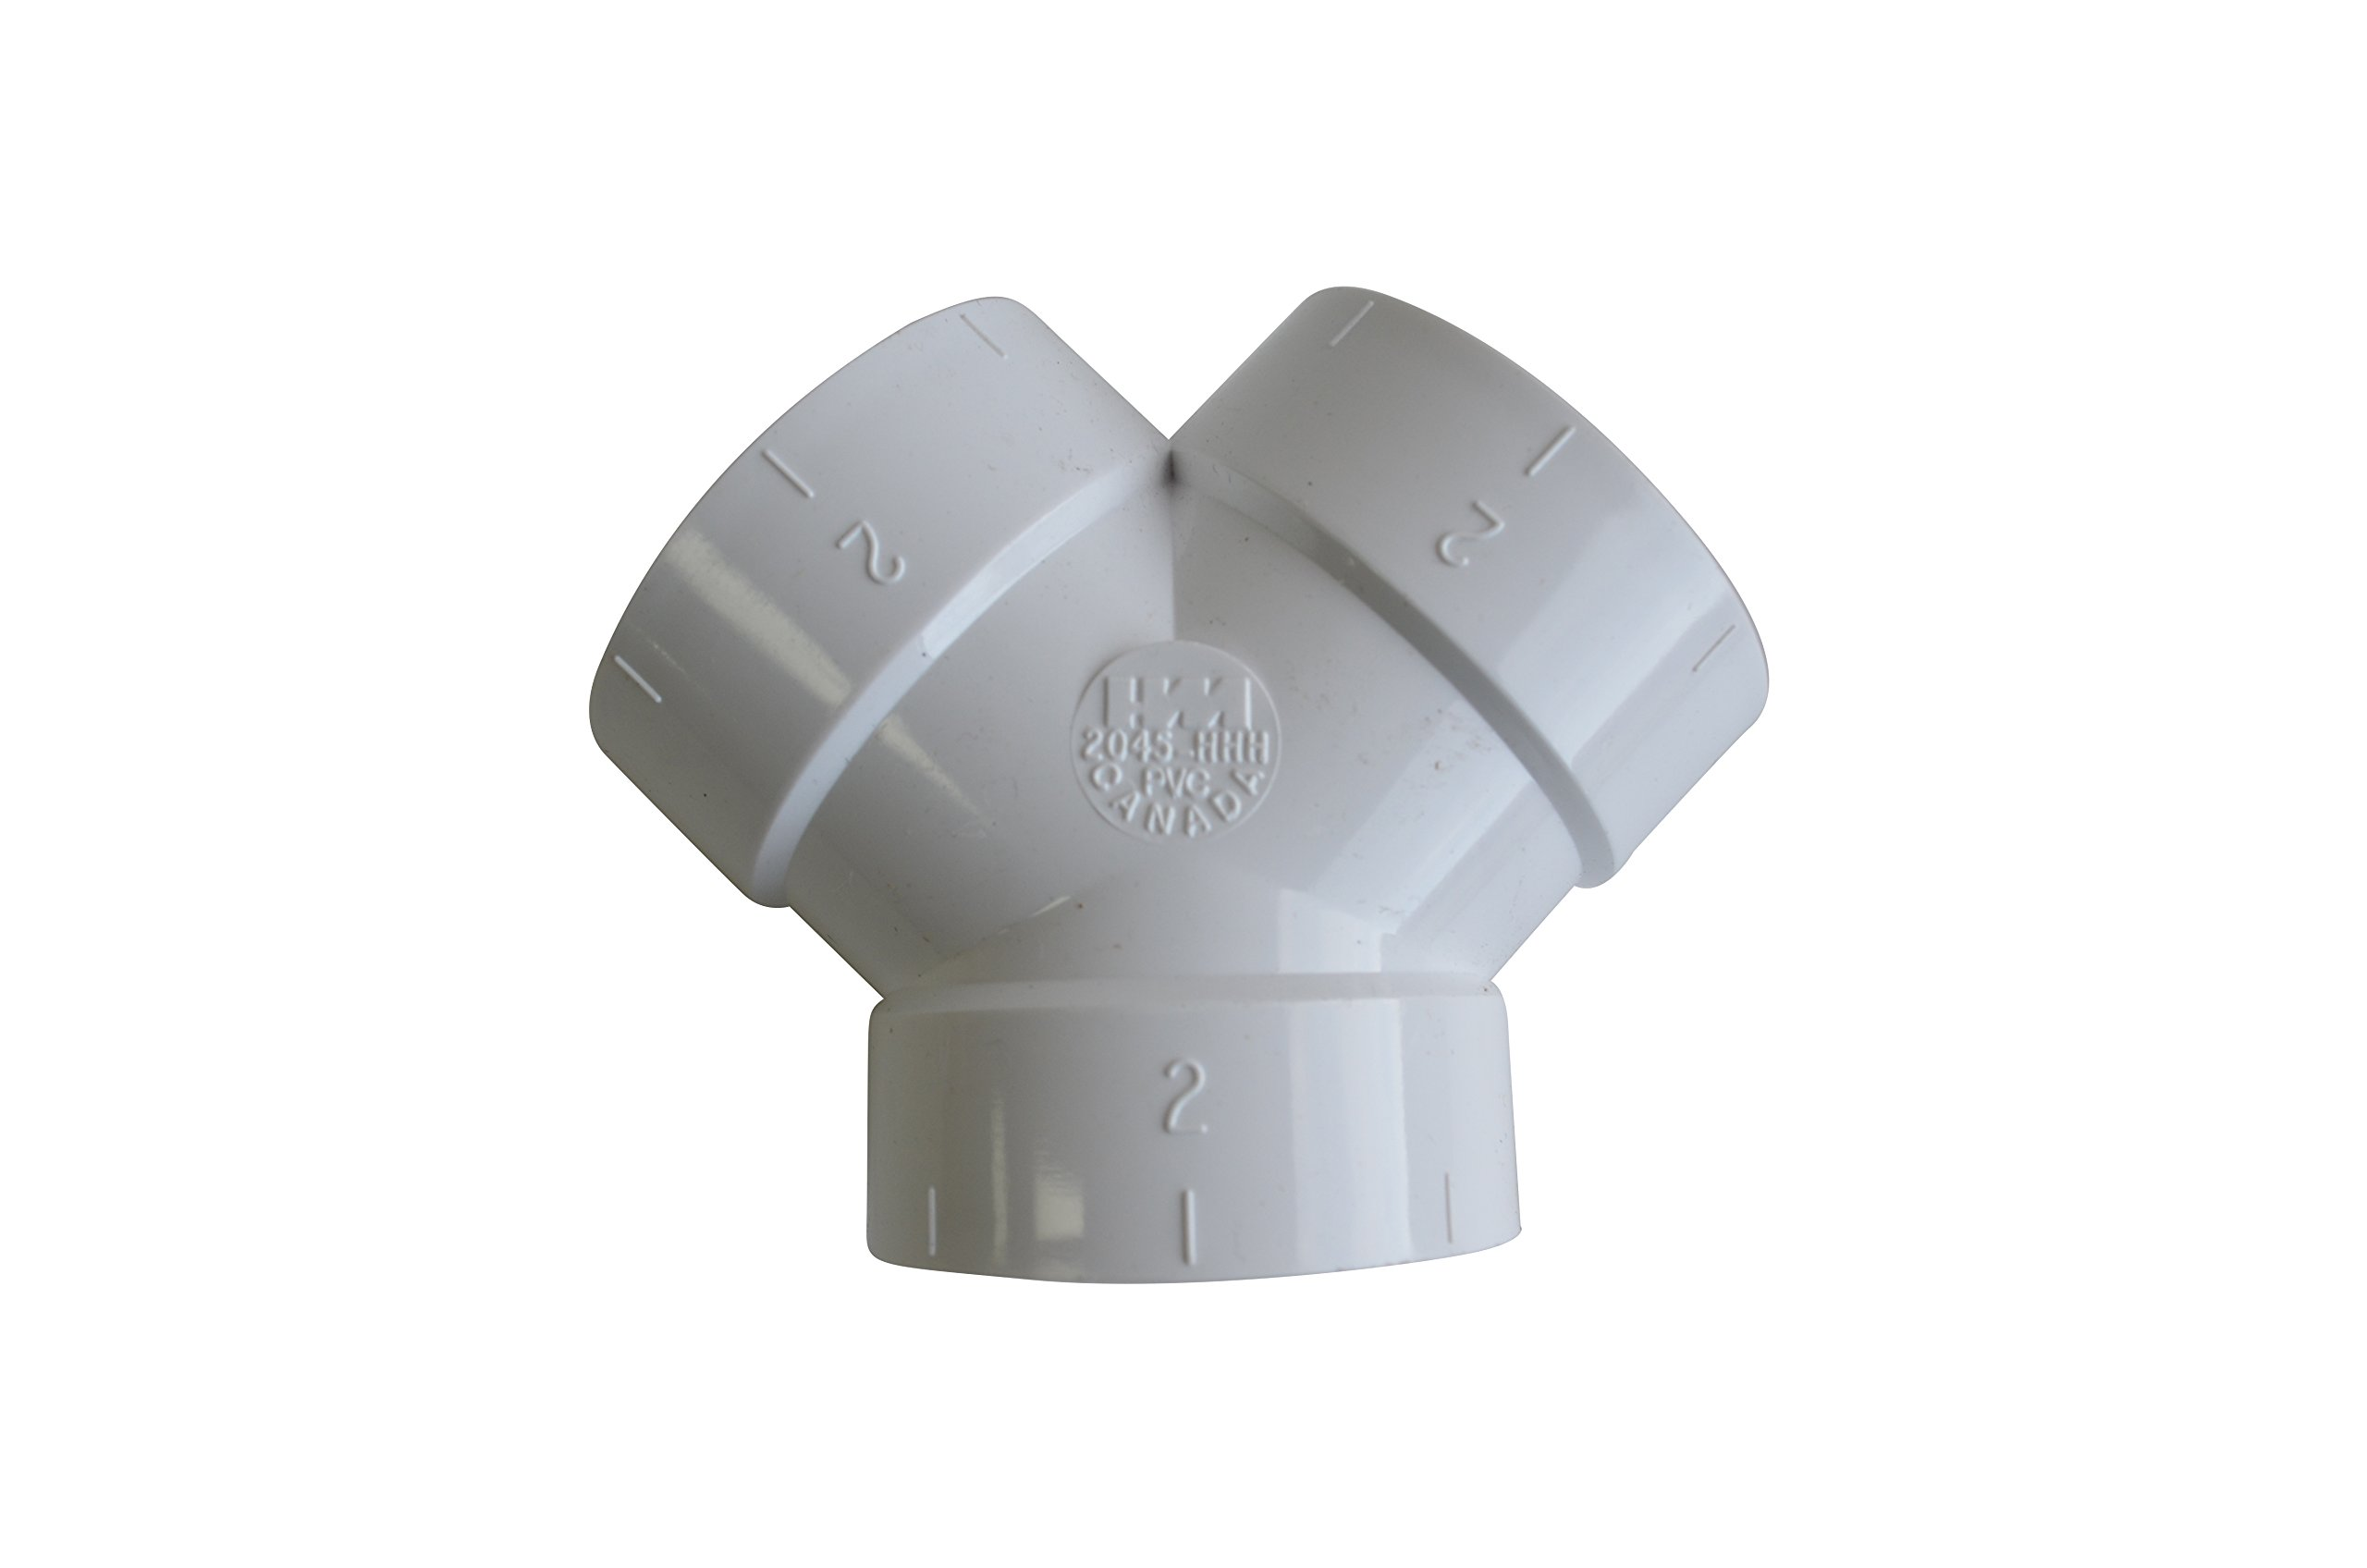 Central Vacuum Cleaner Pipe End Cap For All Central Vacuum Systems Including : Aggresor Airvac AstroVac Beam Cana-Vac Cirrus Drainvac DuoVac Dustcare ,ZVac (1, Pipe End Cap)